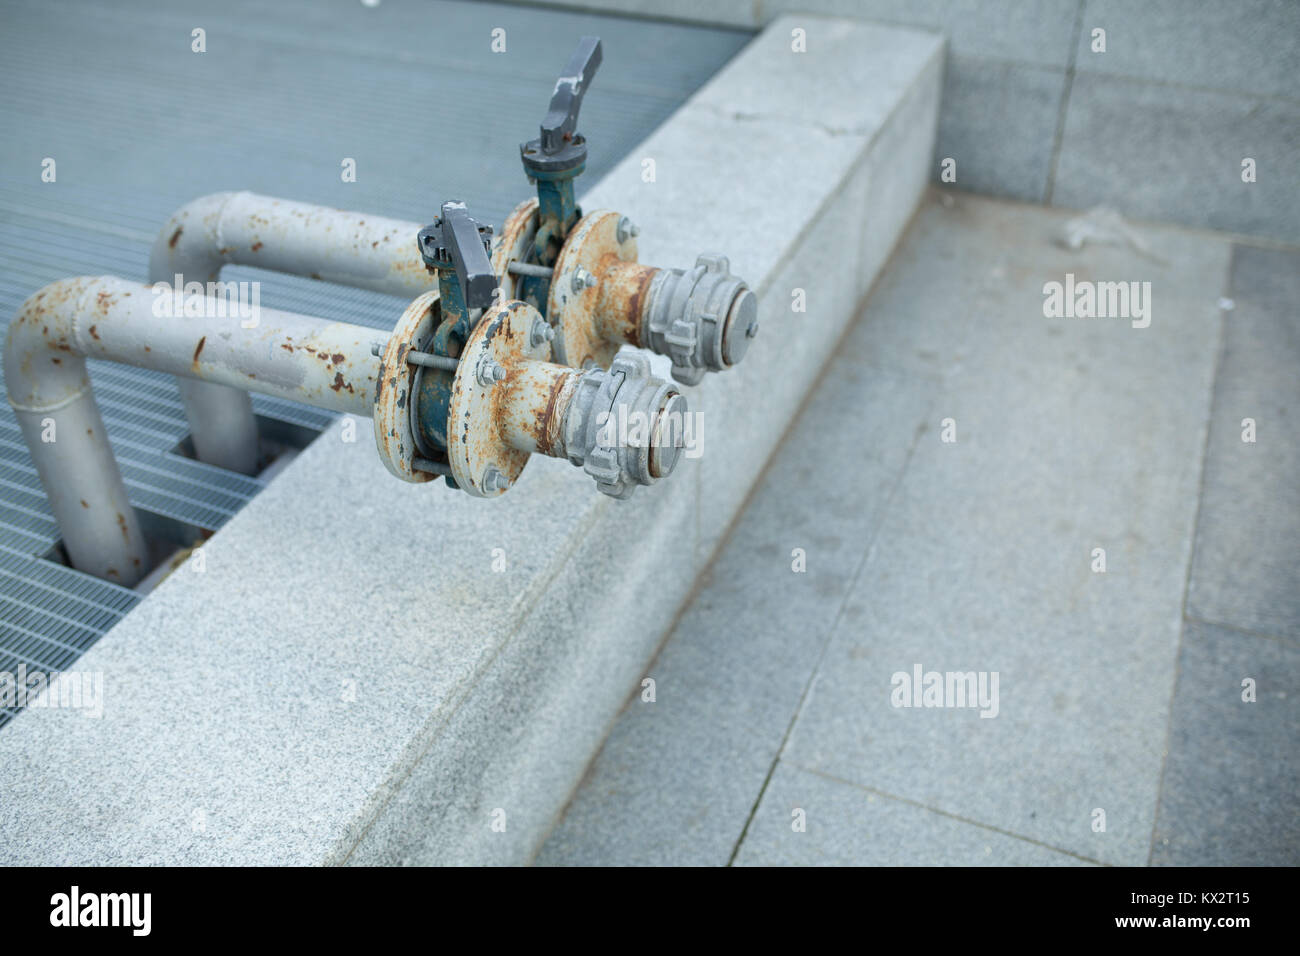 two Outdoor main water shut off valve system compose of brass plumbing gate valve - Stock Image